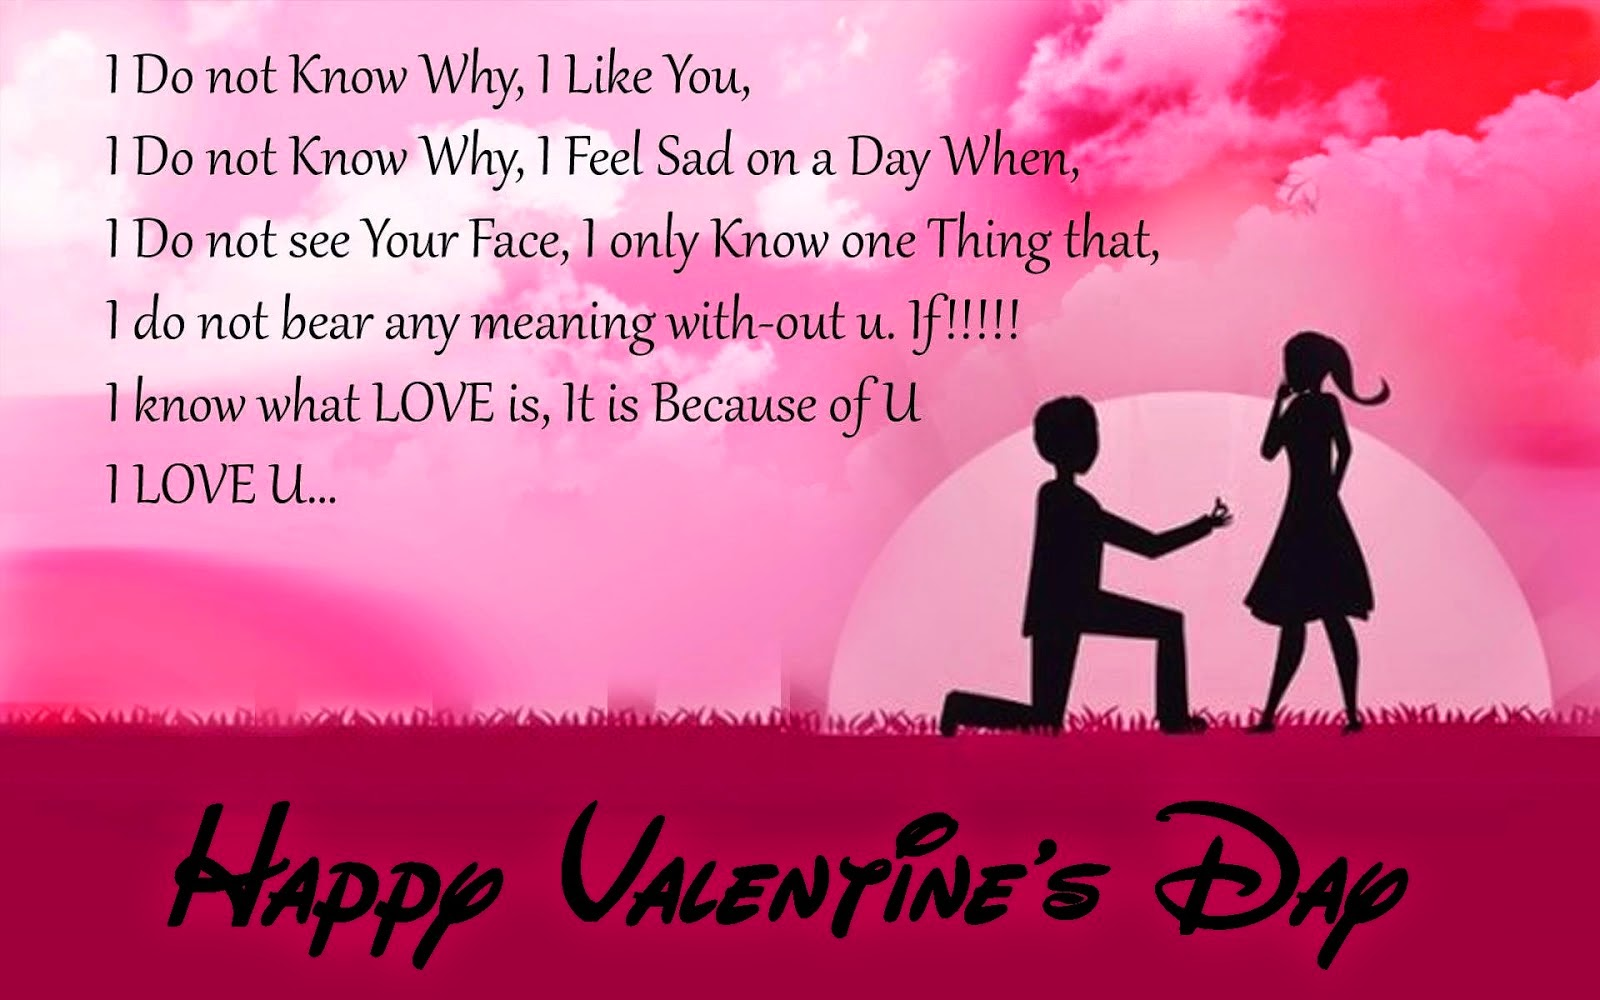 2017 Romantic Valentine Day Poems Love Poems for Valentines Day – Valentines Day Poems for Cards